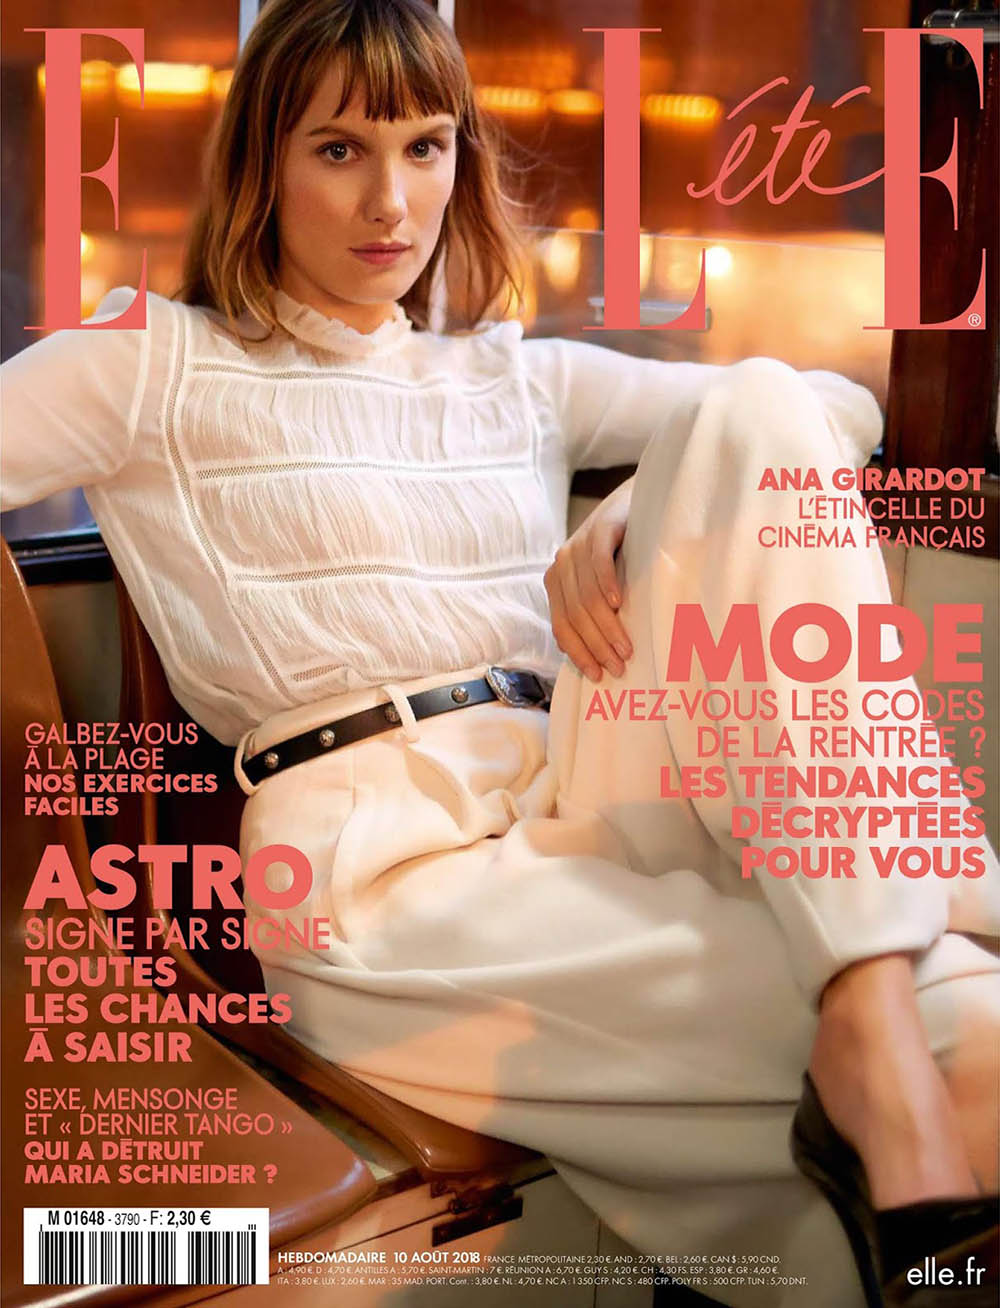 Ana Girardot covers Elle France August 10th, 2018 by Mote Sinabel Aoki